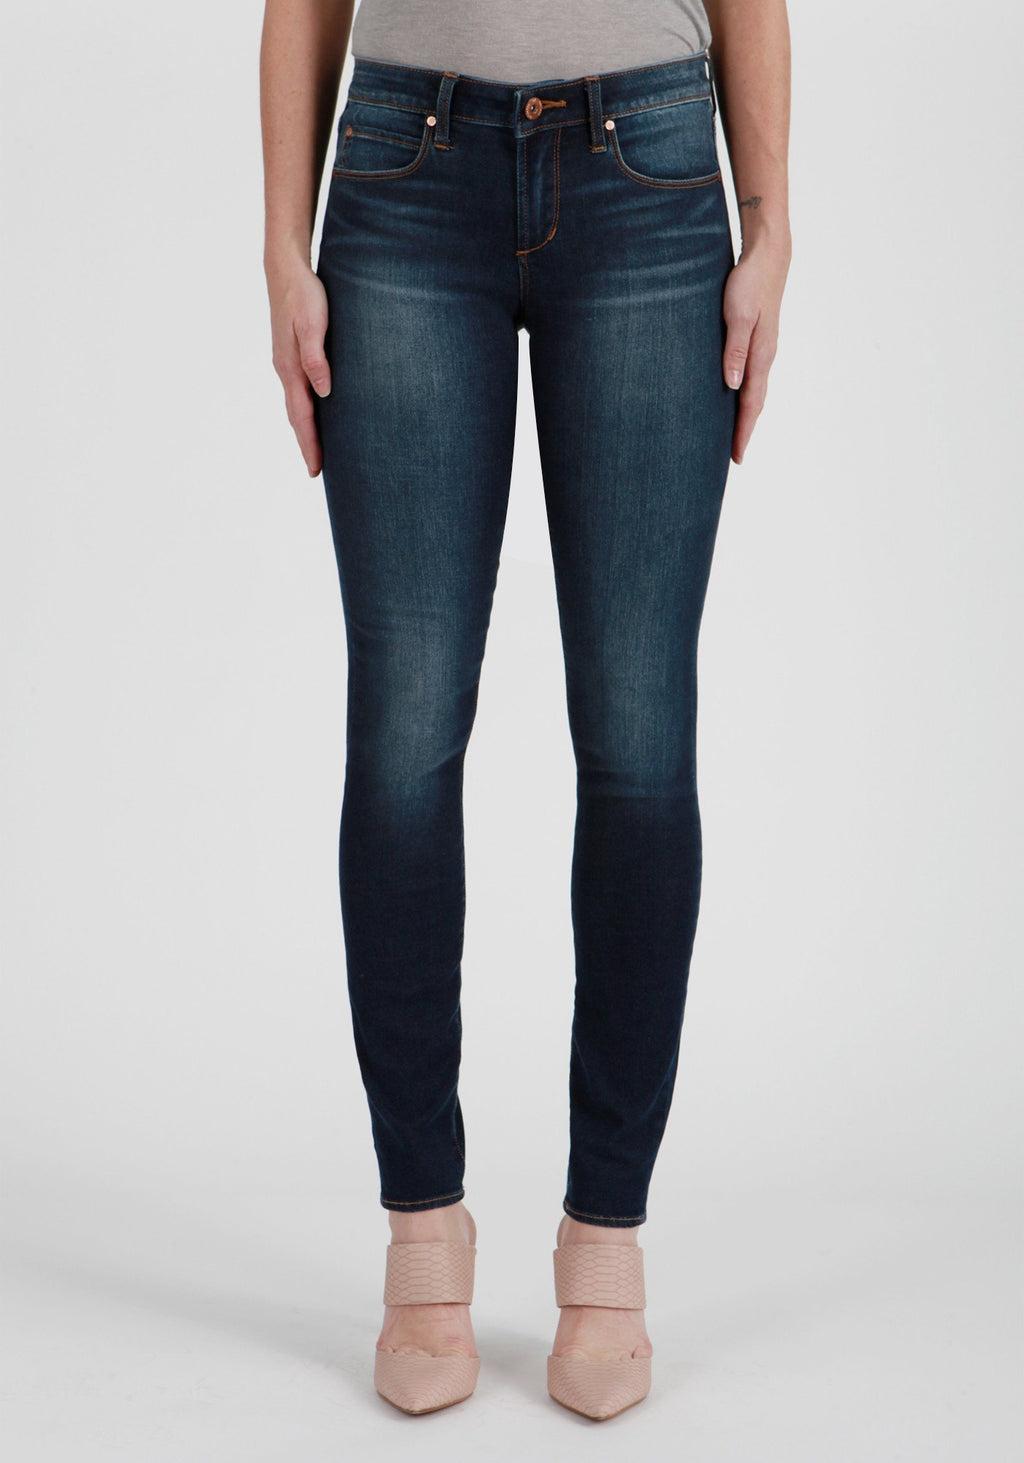 Articles of Society MYA Skinny Jeans